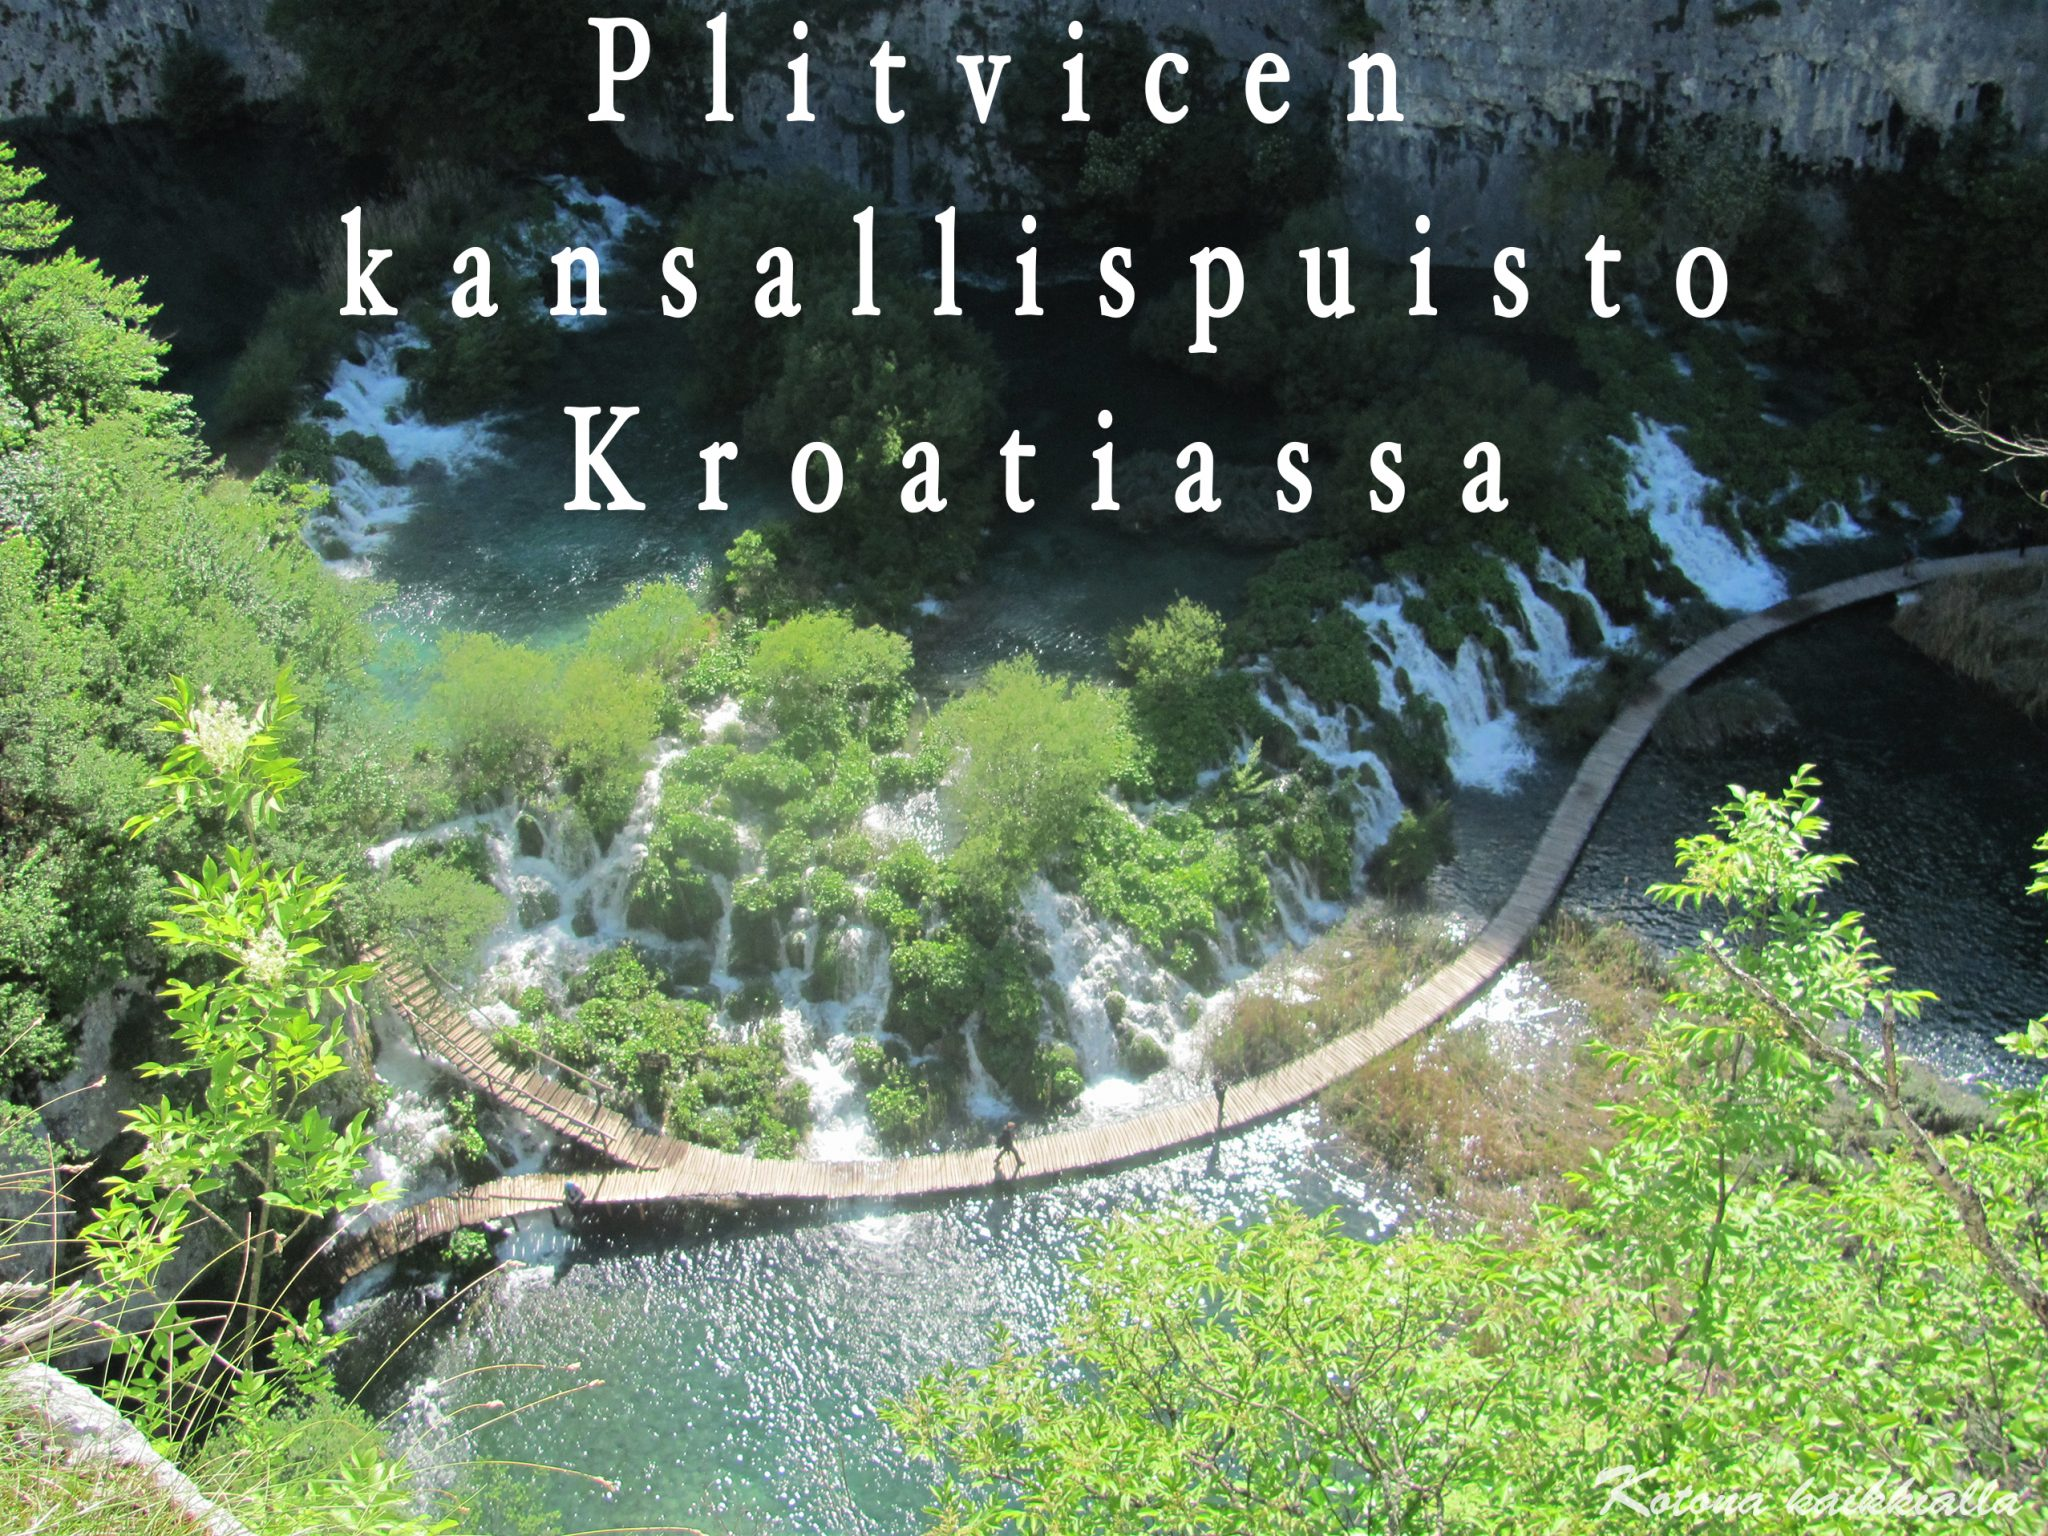 Plitvice National Park Kroatia 2